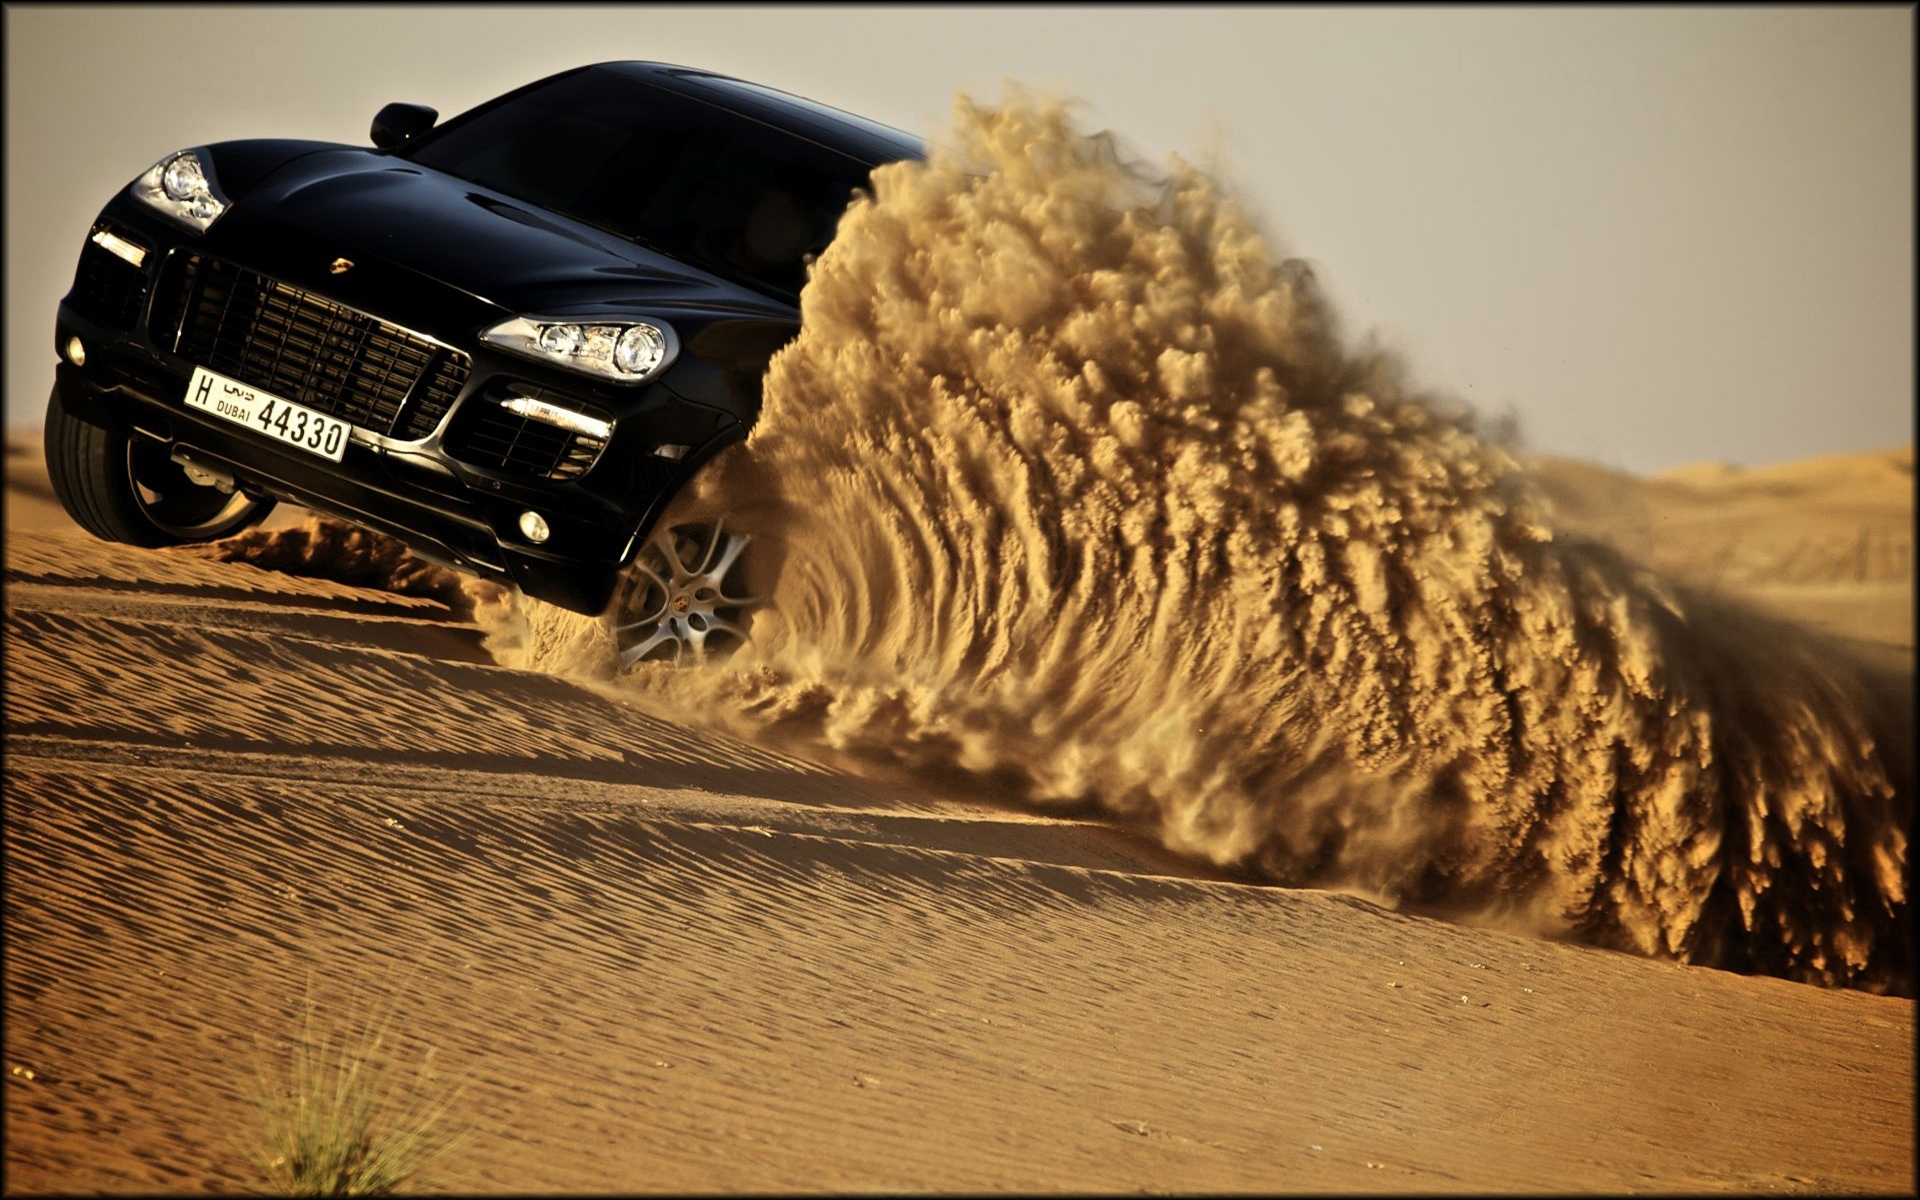 26403 download wallpaper Transport, Auto, Porsche, Sand, Desert screensavers and pictures for free